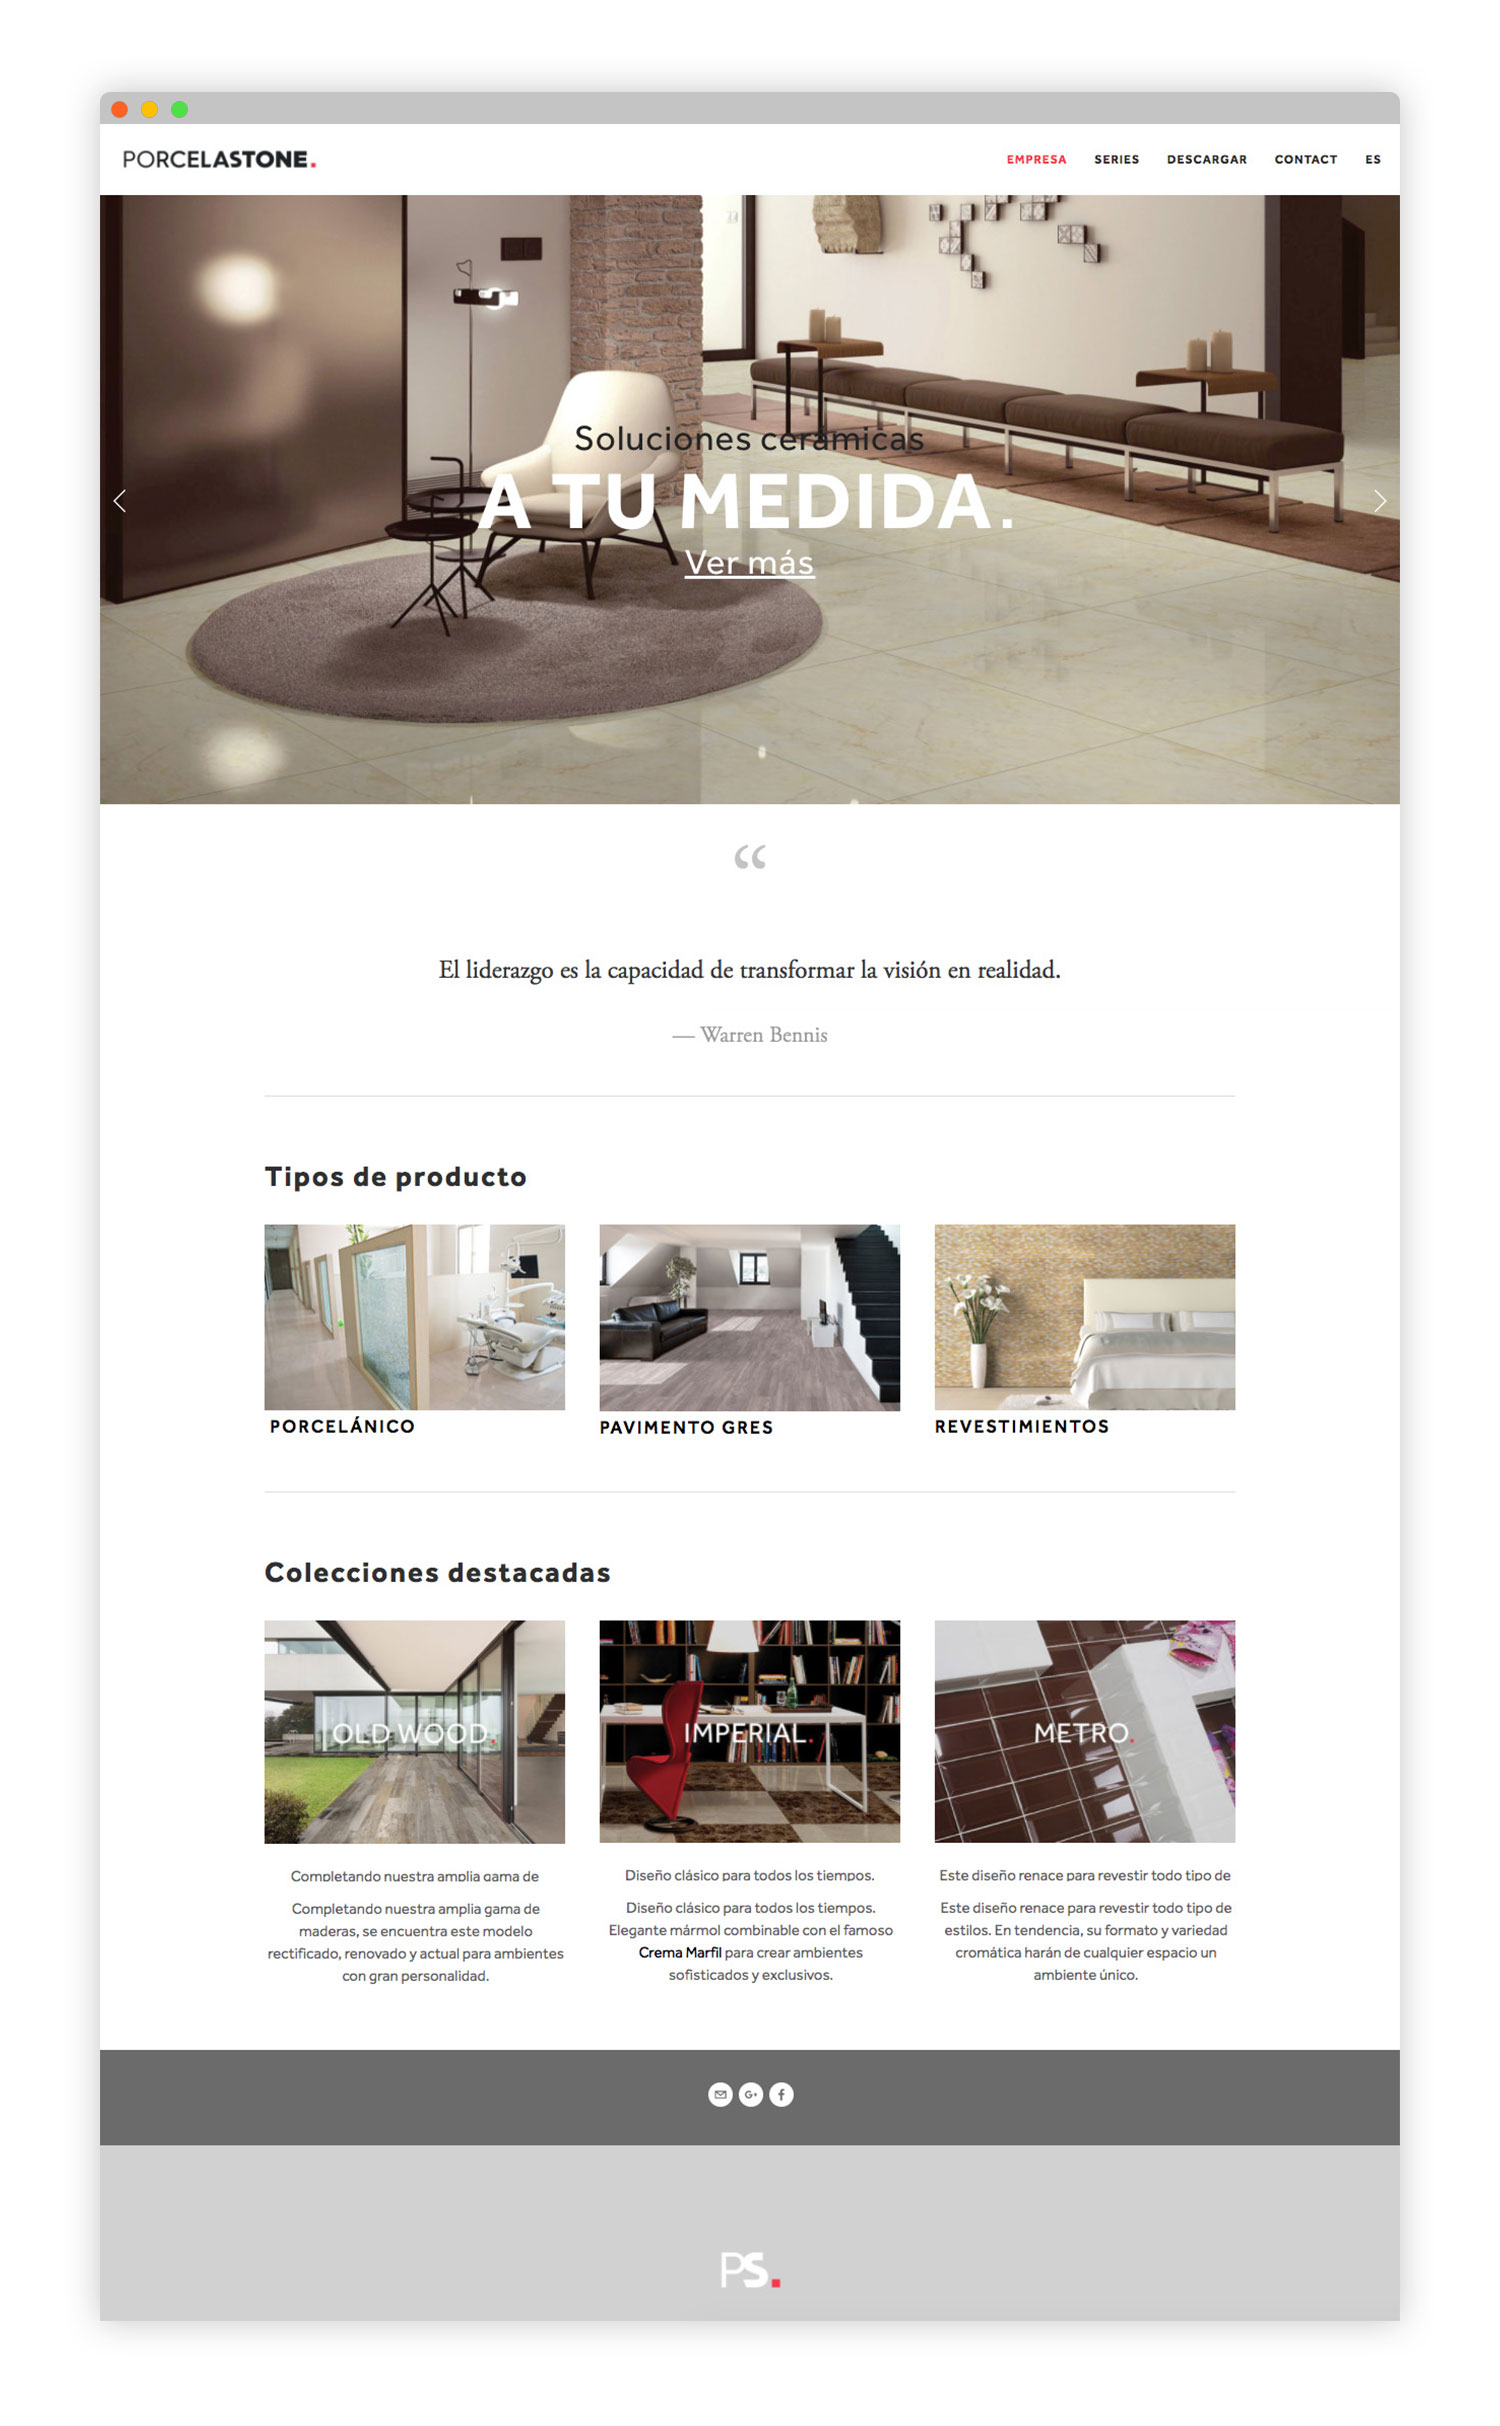 1-PORCELASTONE-WEBSITE-MANUEL-SERRA-SAEZ-SERRAYSAEZ-DESIGN-GRAPHIC.jpg